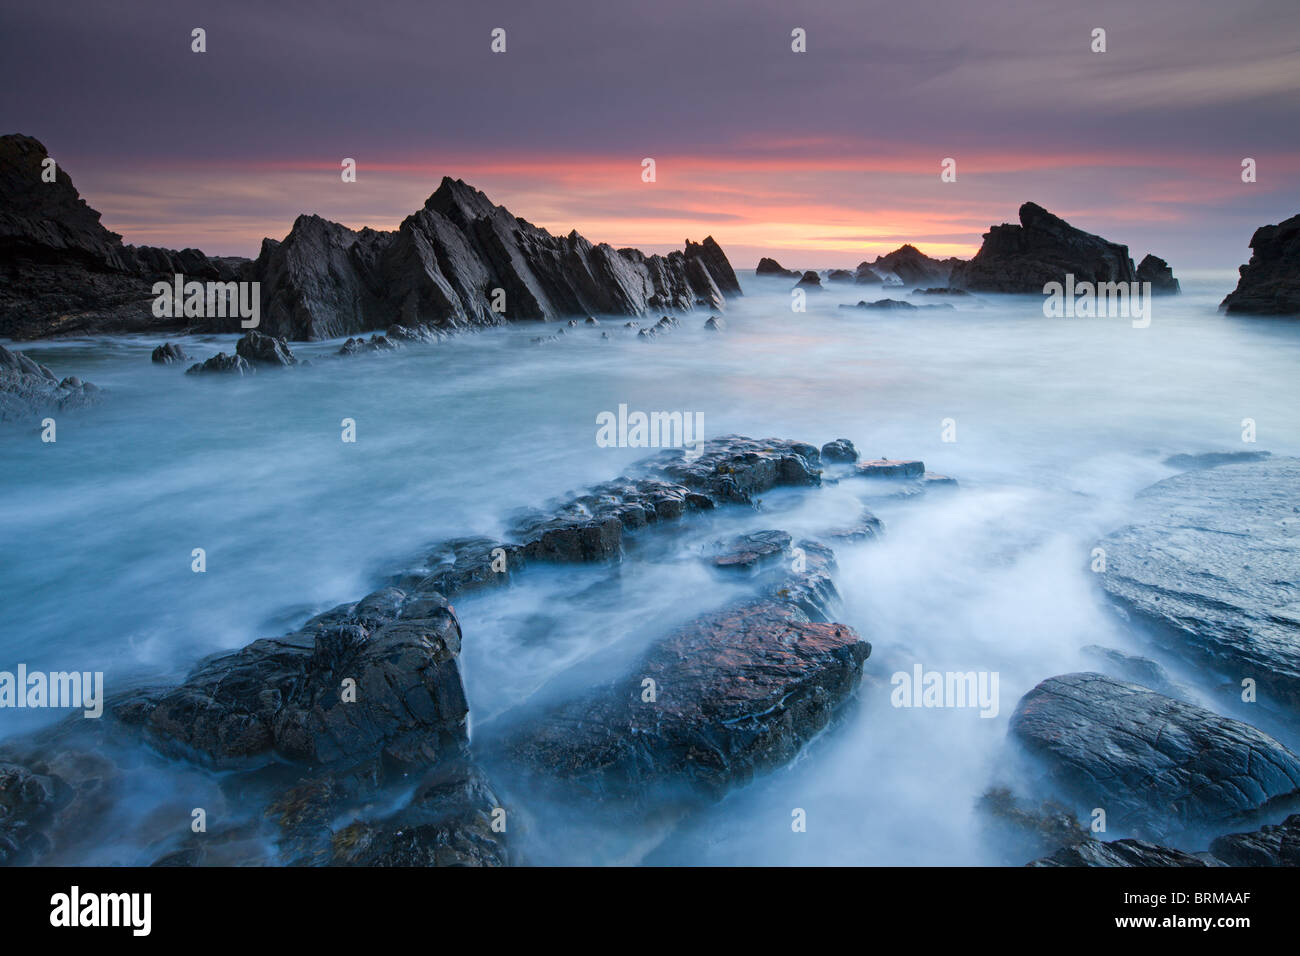 Rocky shores of Hartland Quay in North Devon, England. Spring (April) 2010. - Stock Image